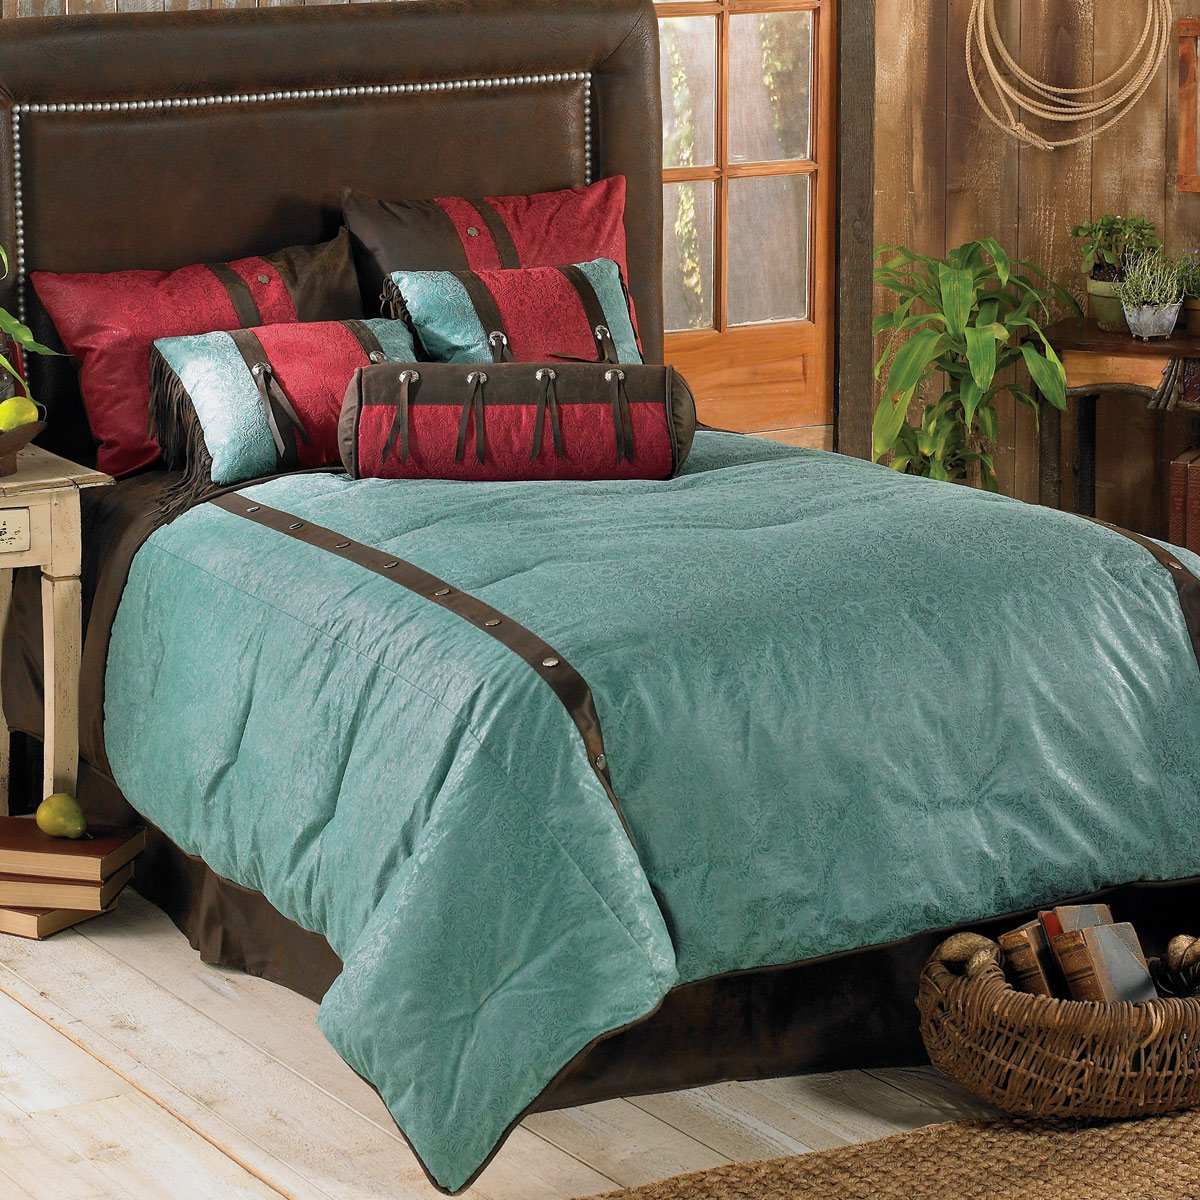 Cheyenne Turquoise Bed Set - Super King